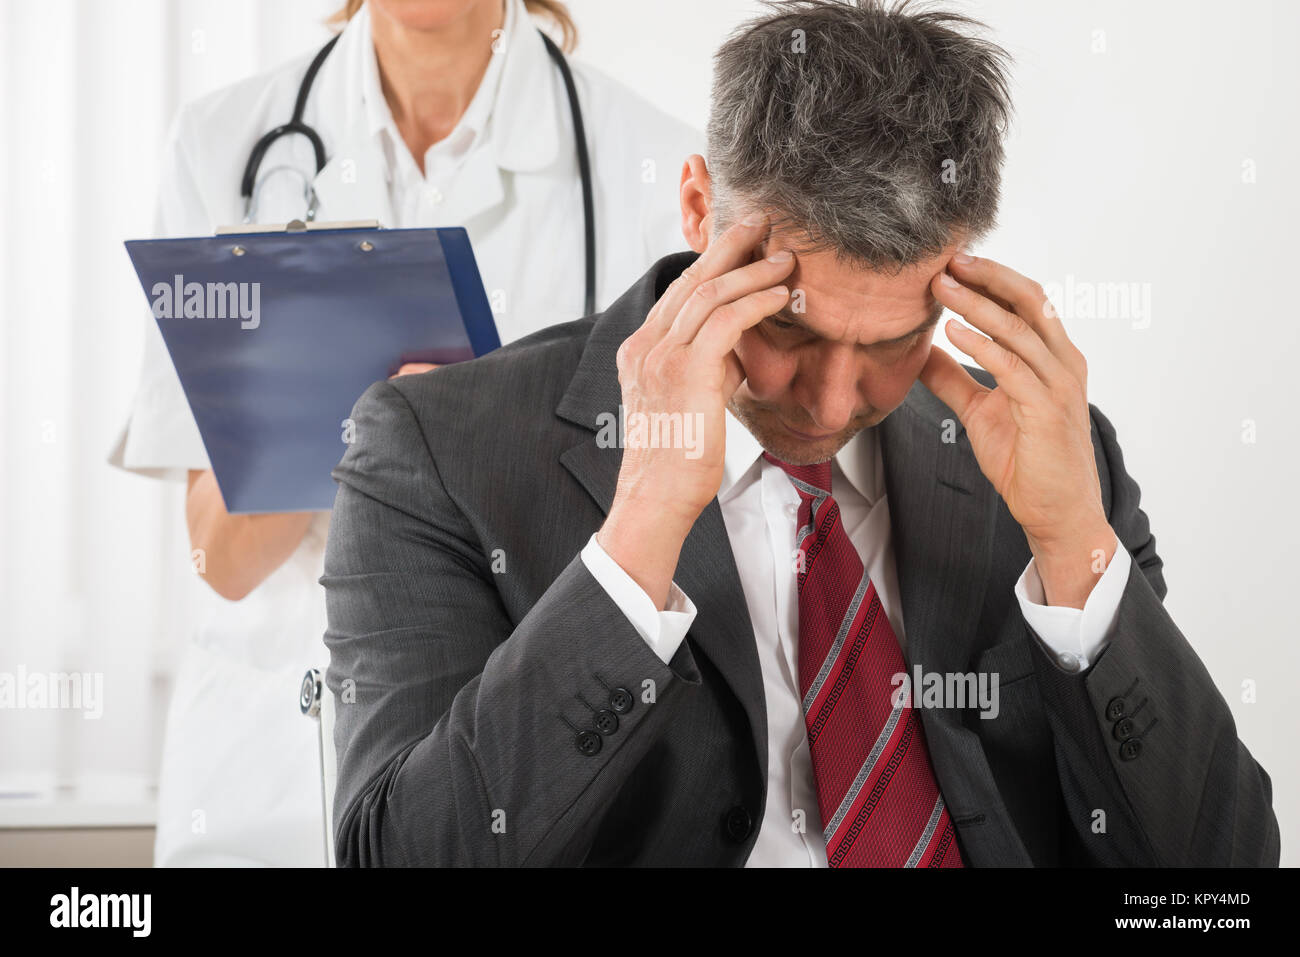 Doctor Standing Behind The Businessman Having Headache - Stock Image